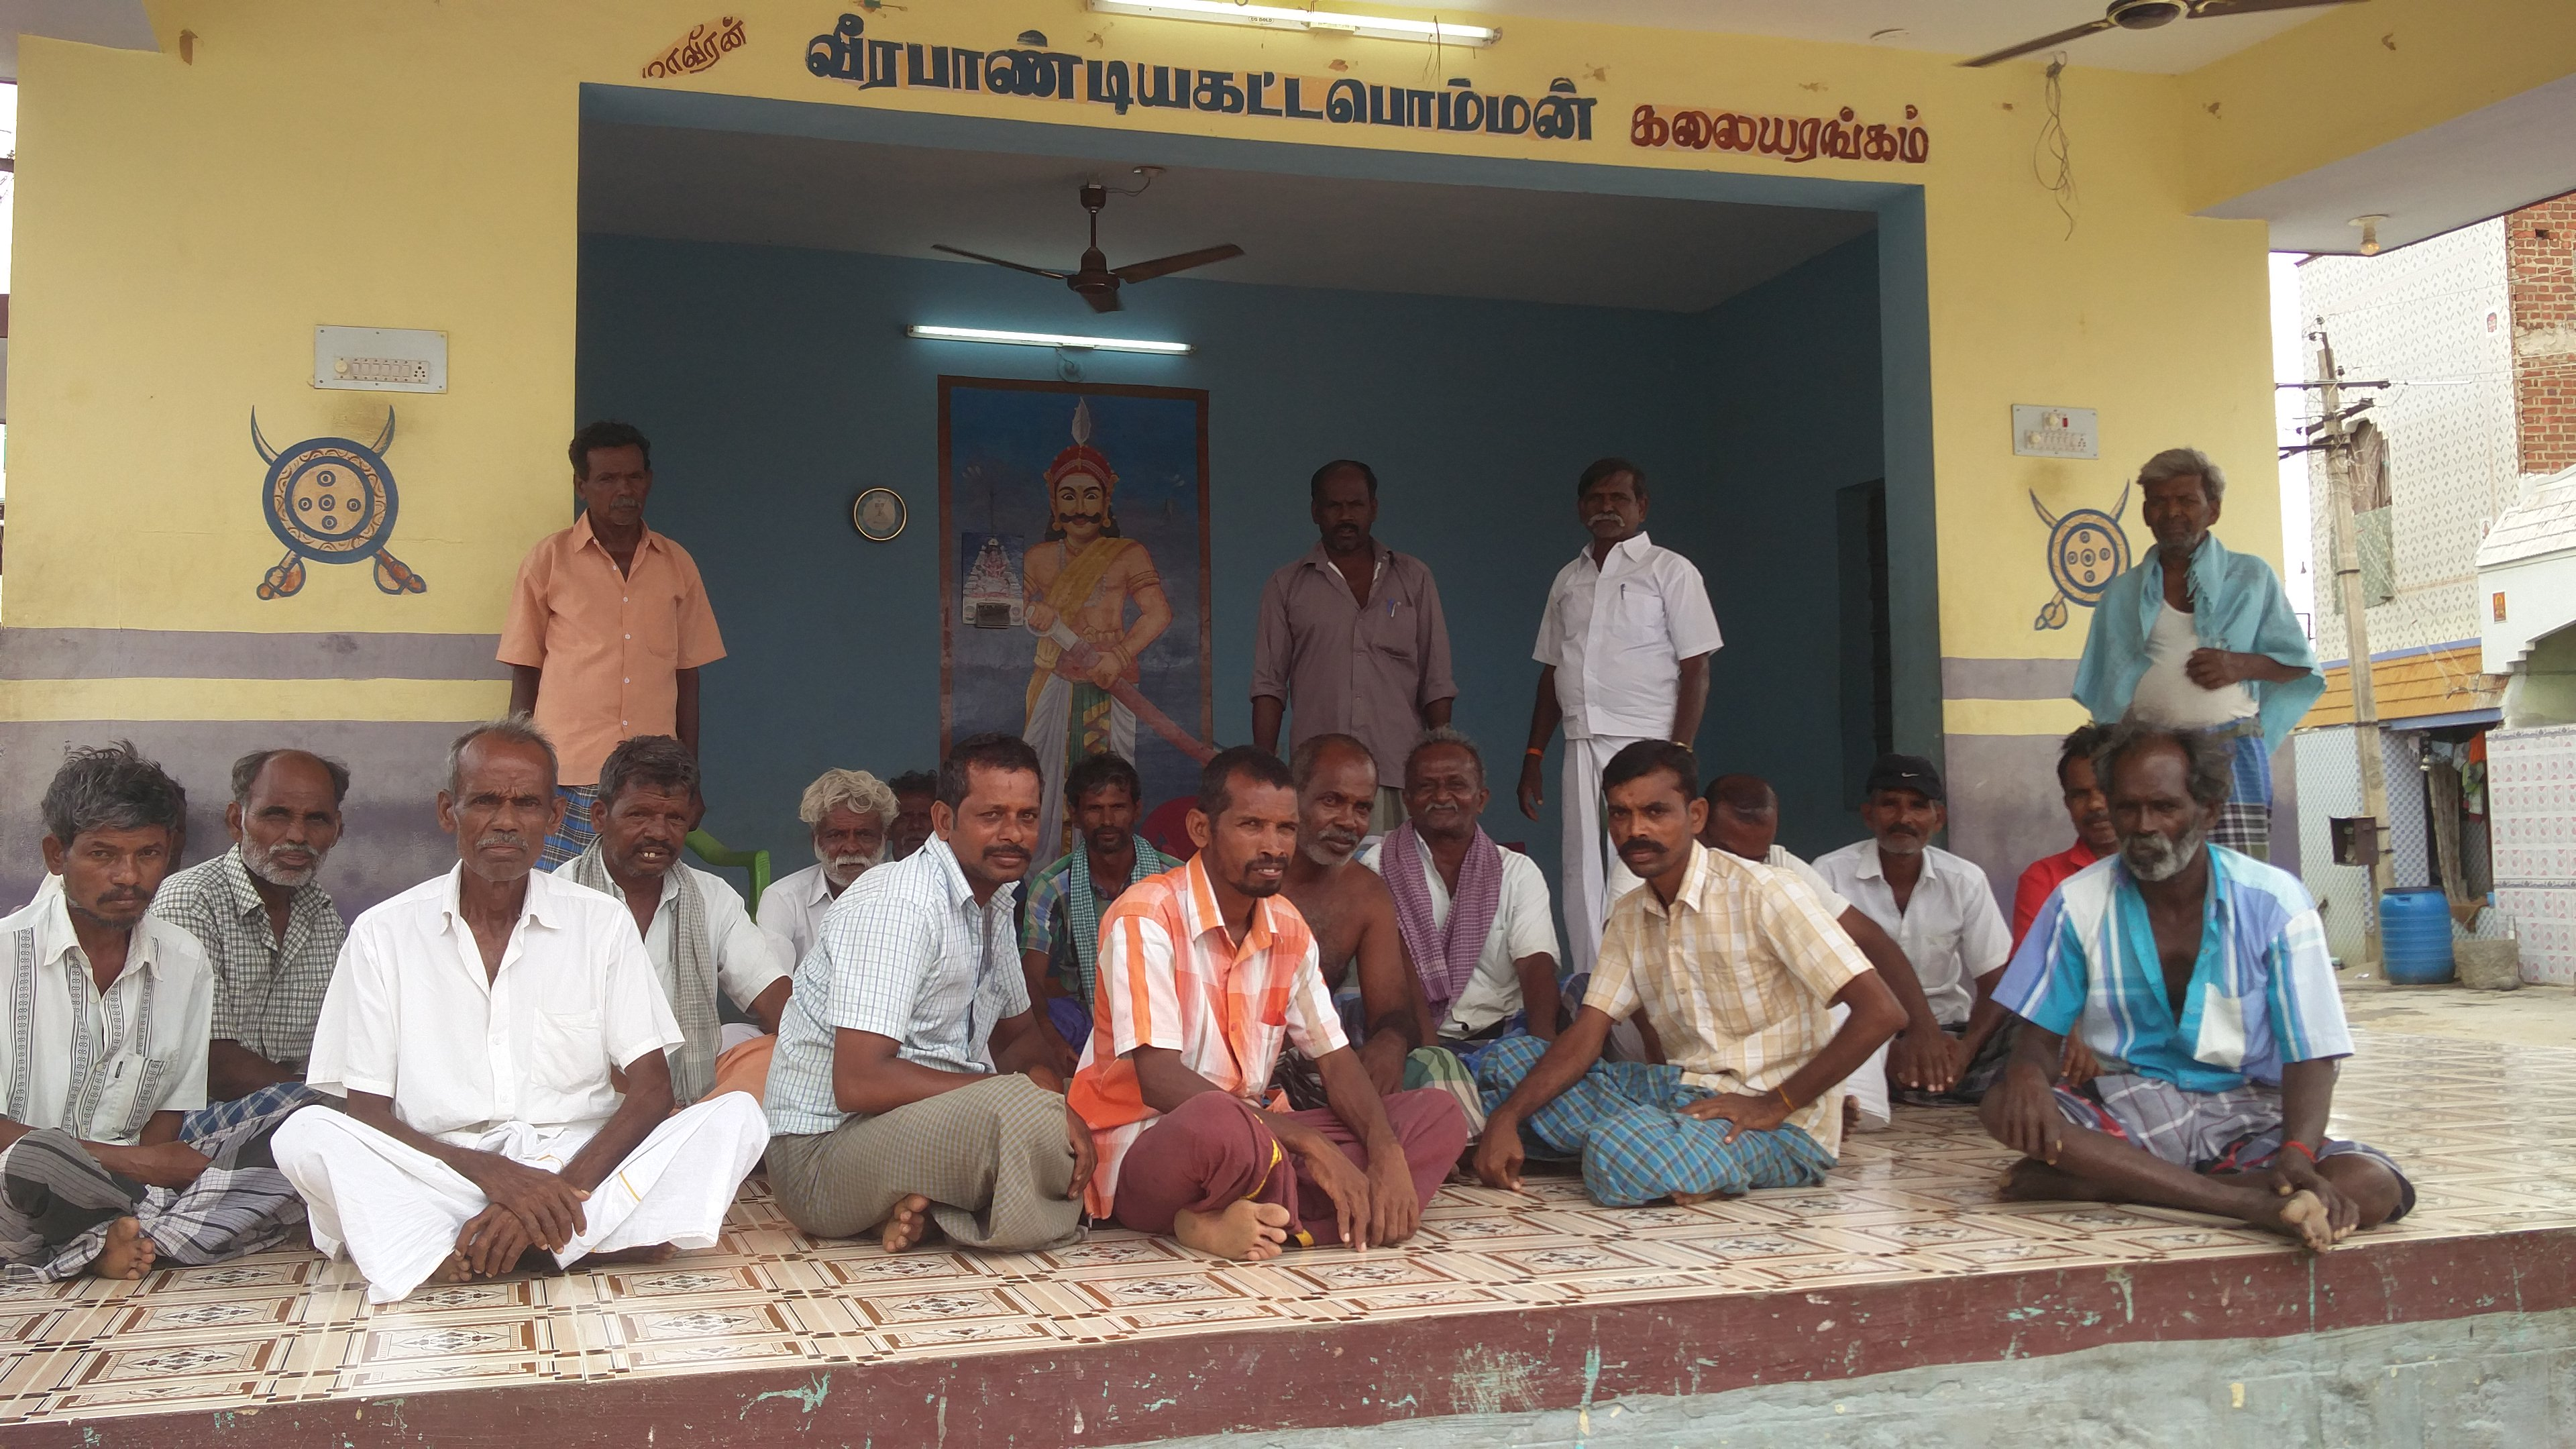 Members of the upper caste Thottinayakar community in Thottiyapati village.